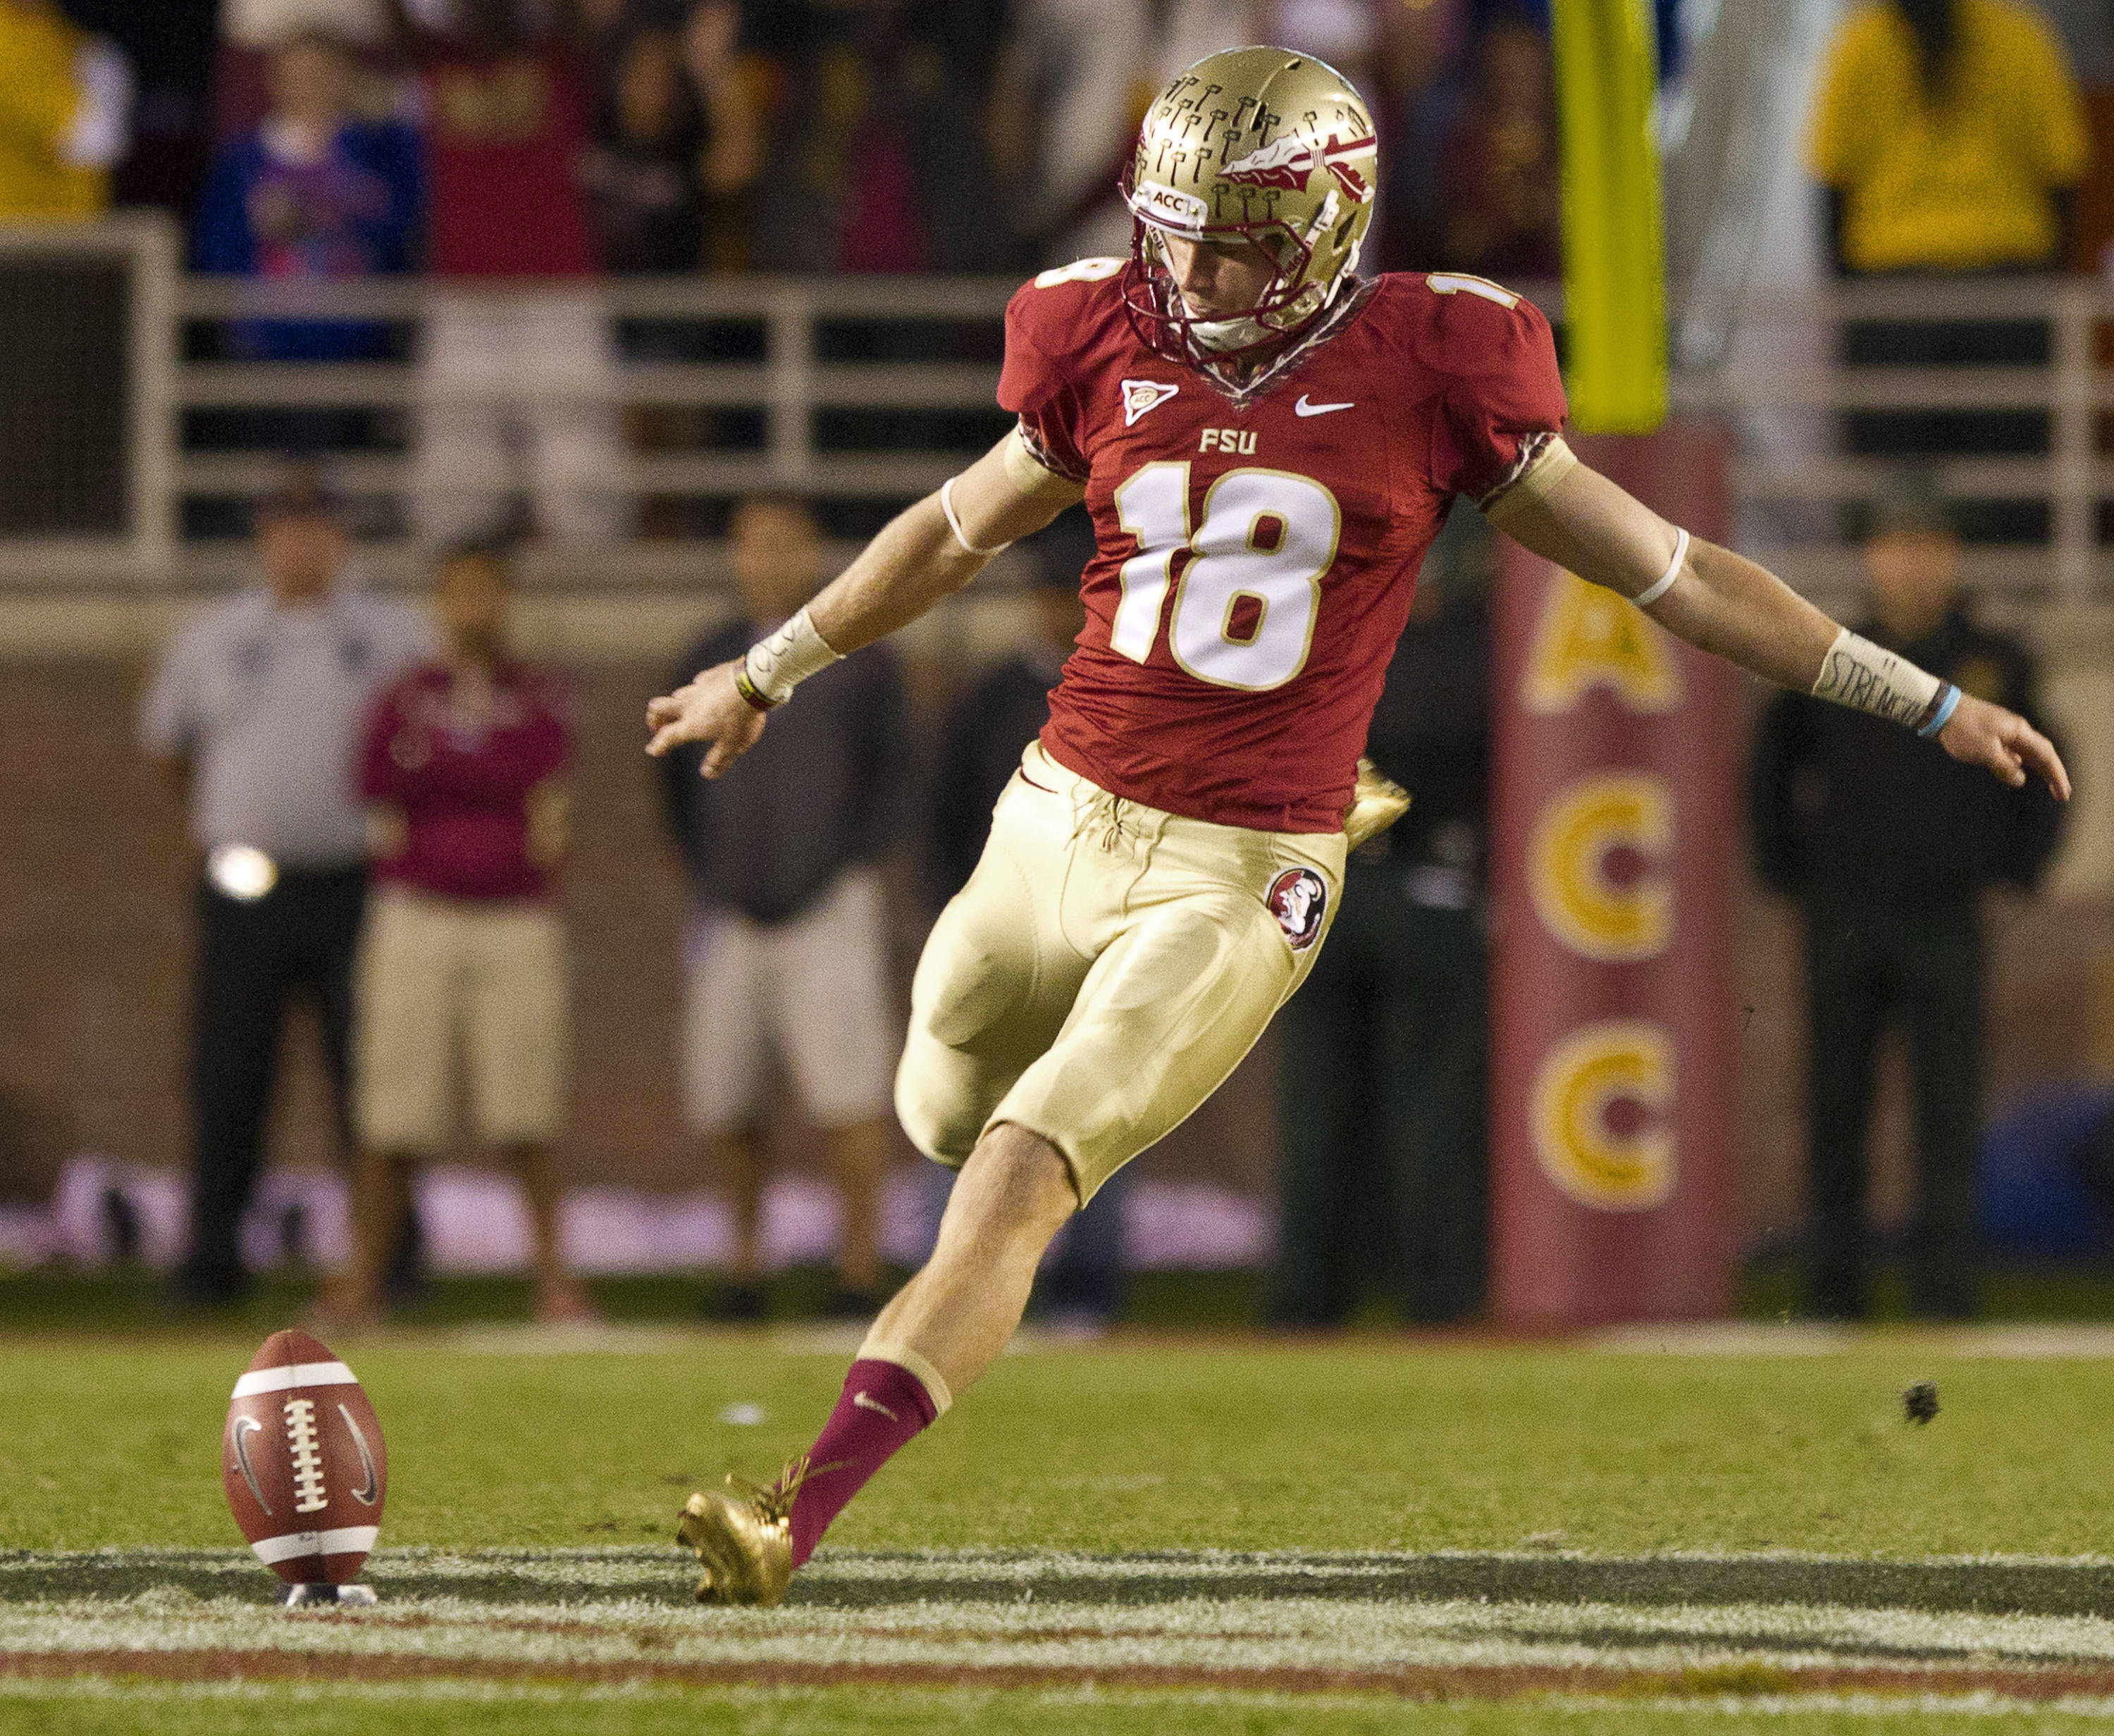 Dustin Hopkins (18) takes a kickoff during FSU Football's game against UF on Saturday, November 24, 2012 in Tallahassee, Fla.